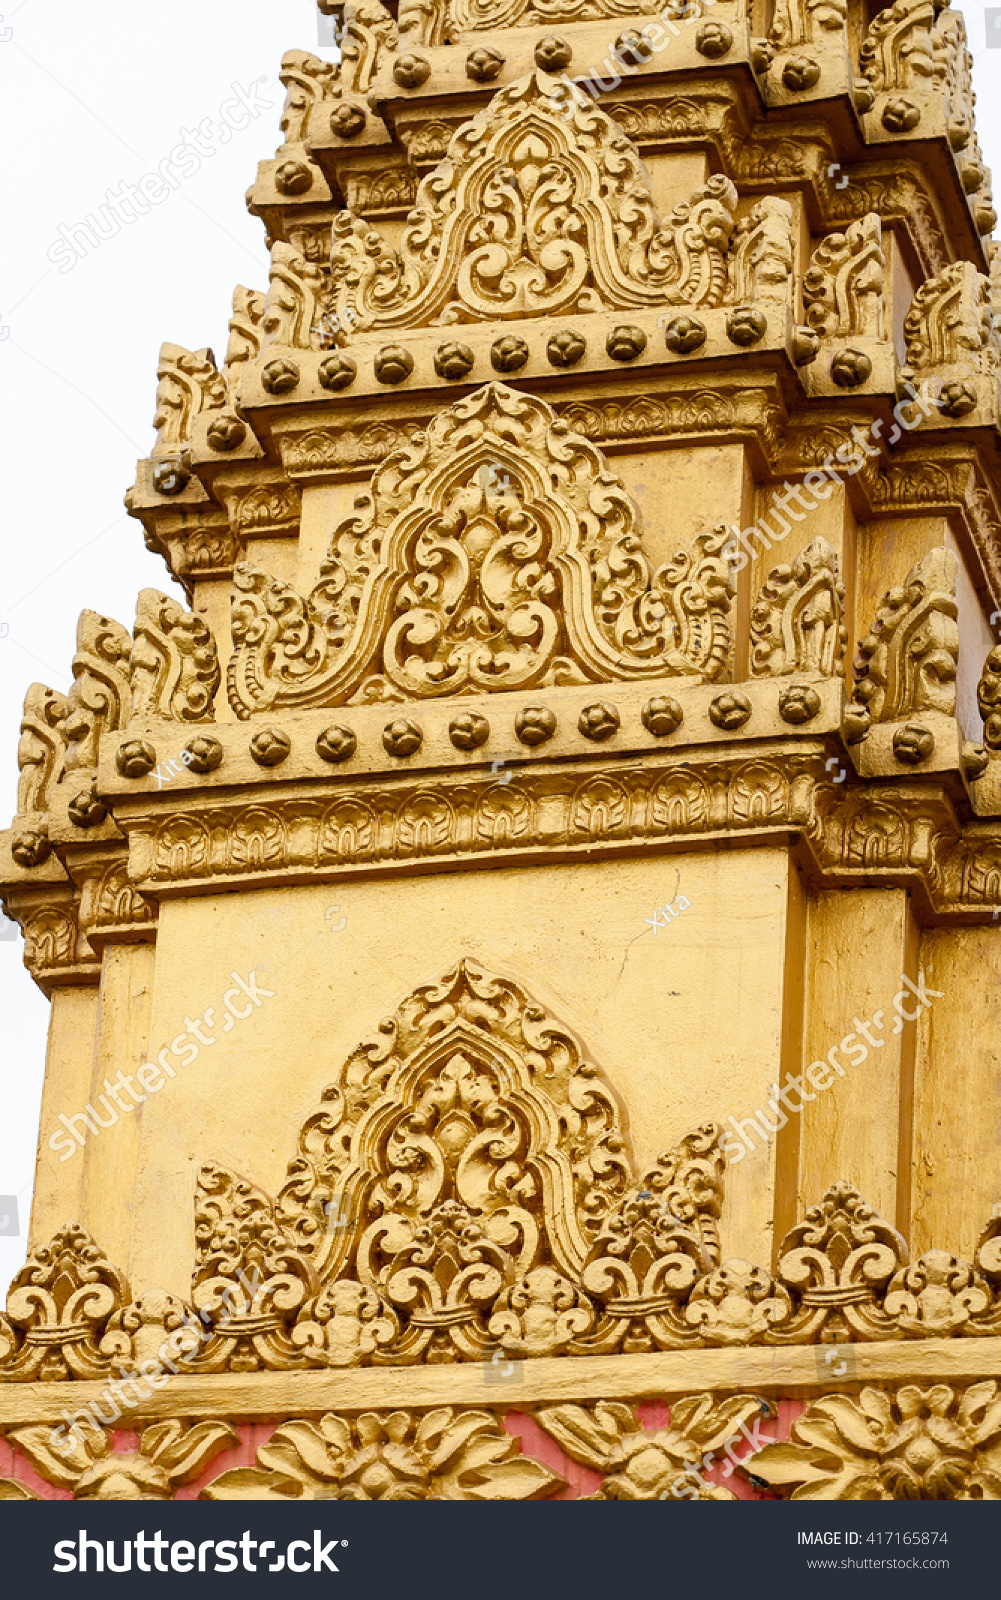 Floral Art On Wall Khmer Buddhist Stock Photo (Download Now ...